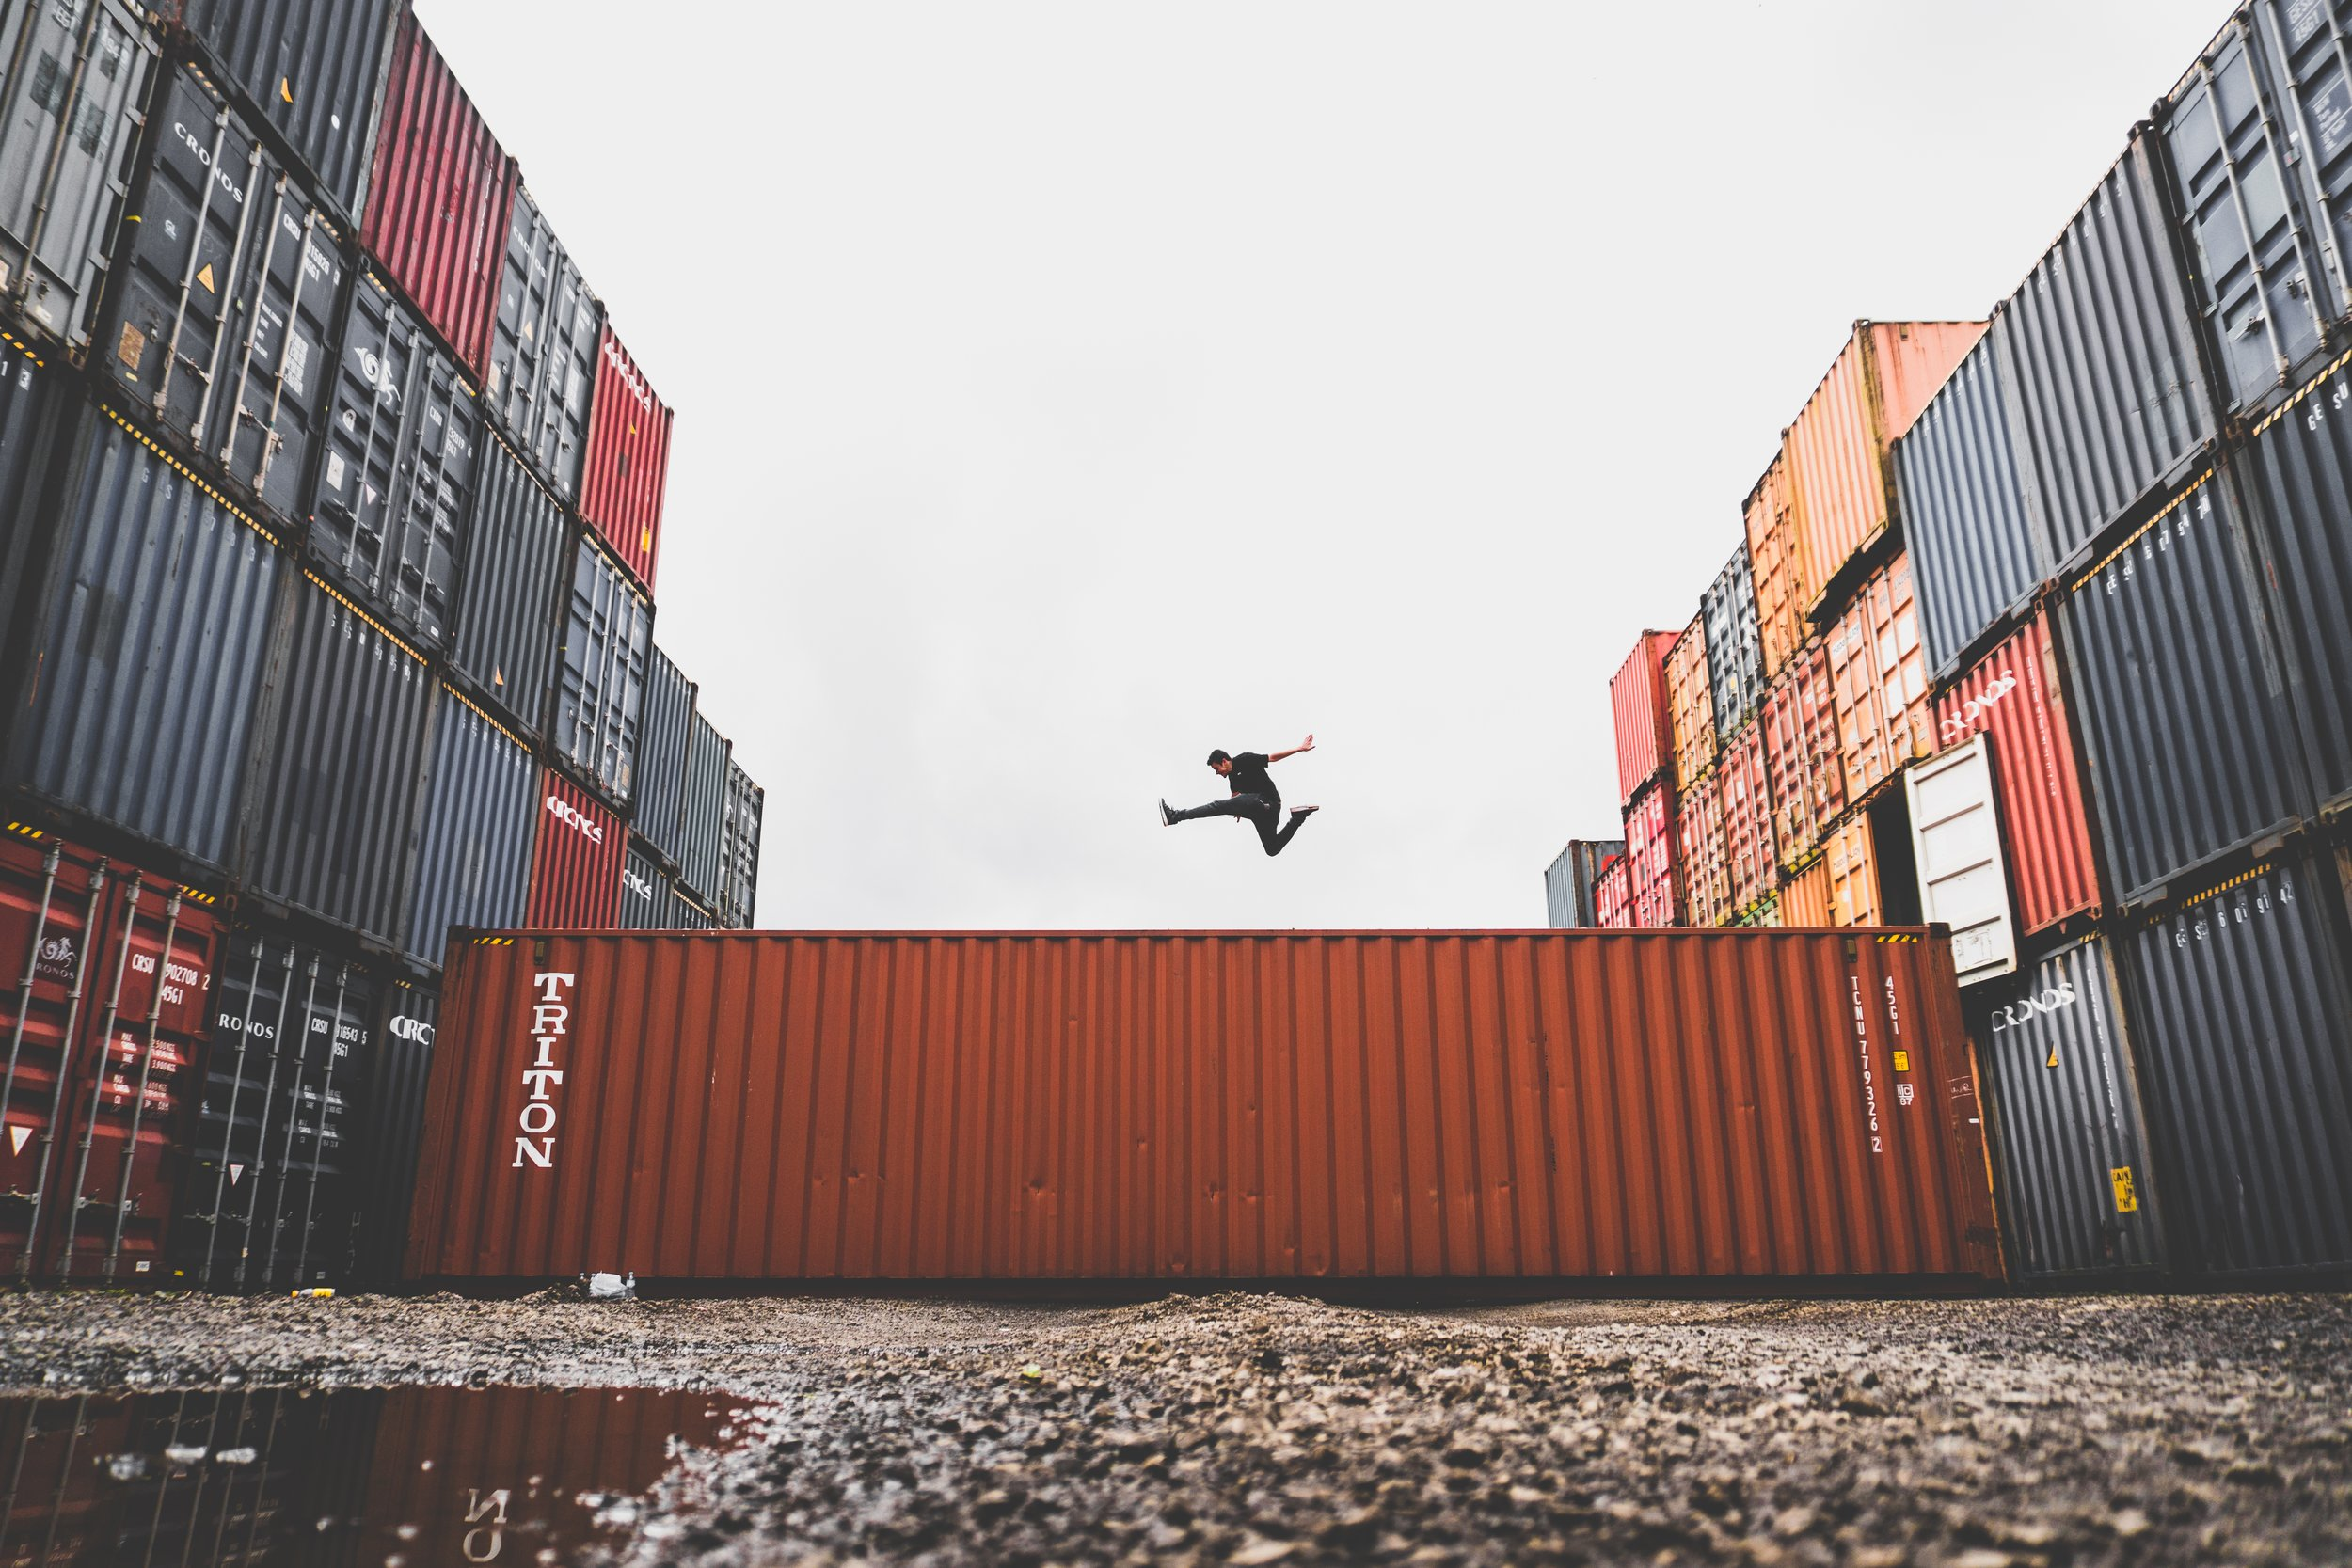 negative-space-man-jump-container-docks-kaique-rocha.jpg